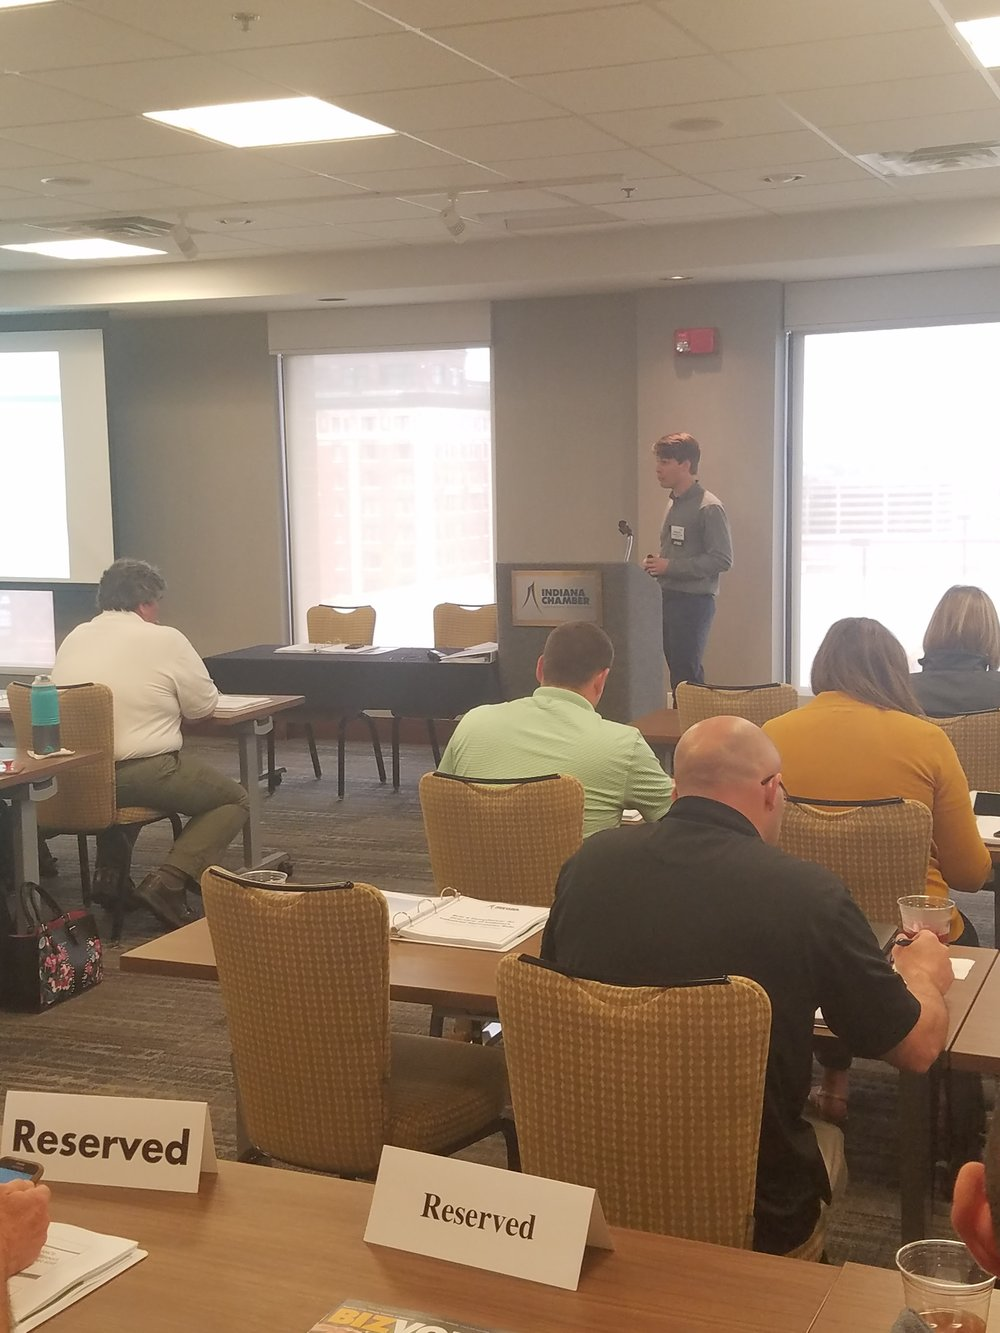 """Nathaniel Cullen, Staff Scientist, presenting on """"Rule 6 Compliance - Indiana's Industrial Stormwater Rule"""""""